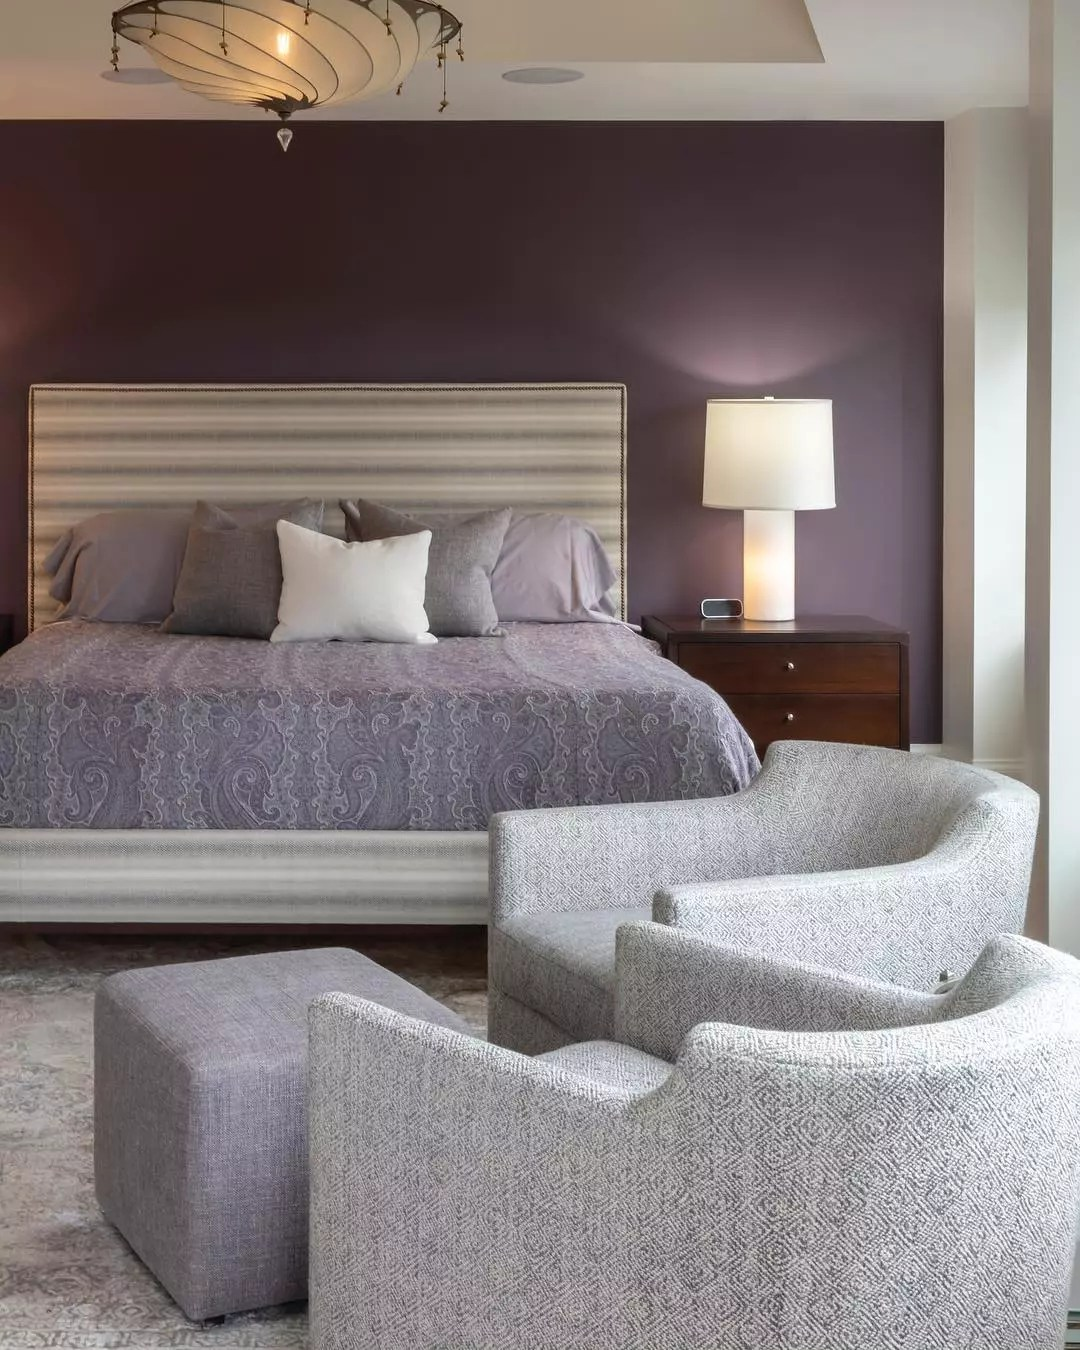 Plum accent wall in a room with a lavender bed and light gray chairs. Photo by Instagram user @katezeidlerdesign.